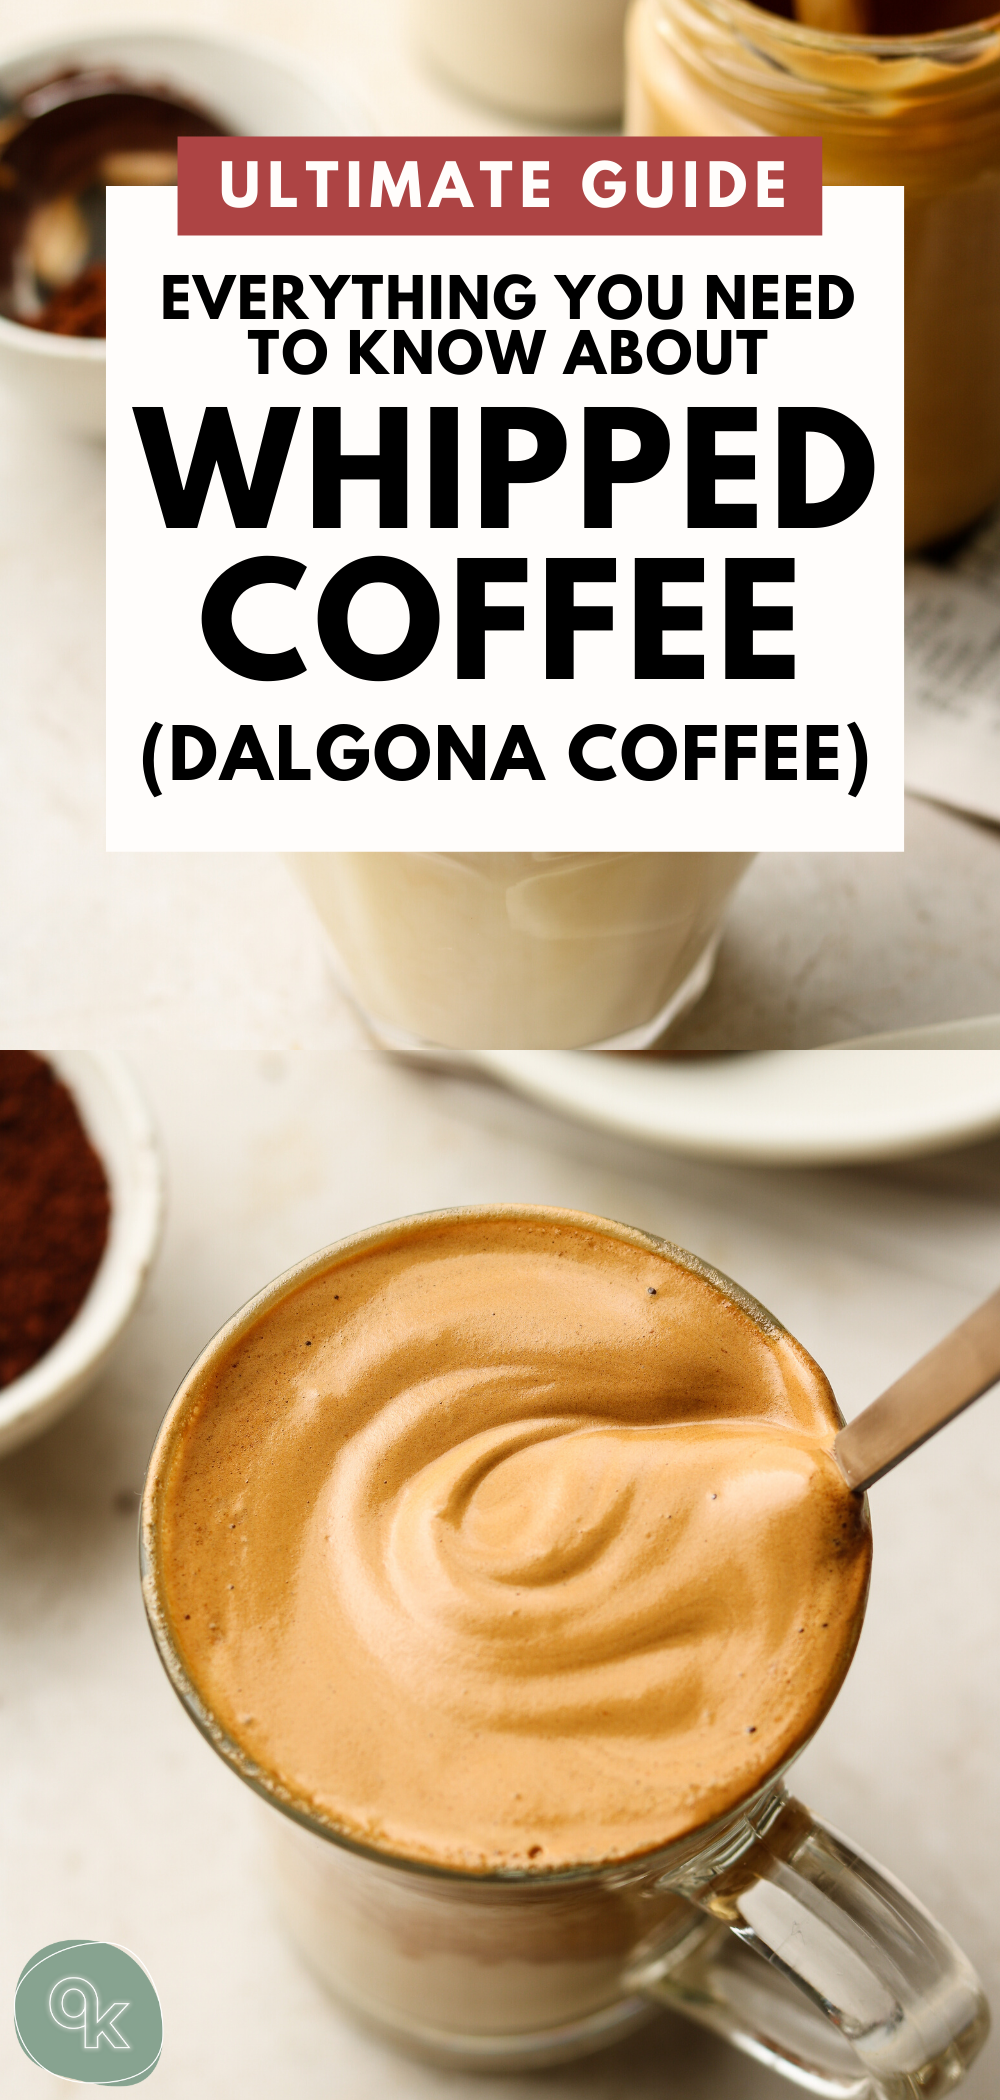 Whipped Coffee (Dalgona Coffee) The Ultimate Guide